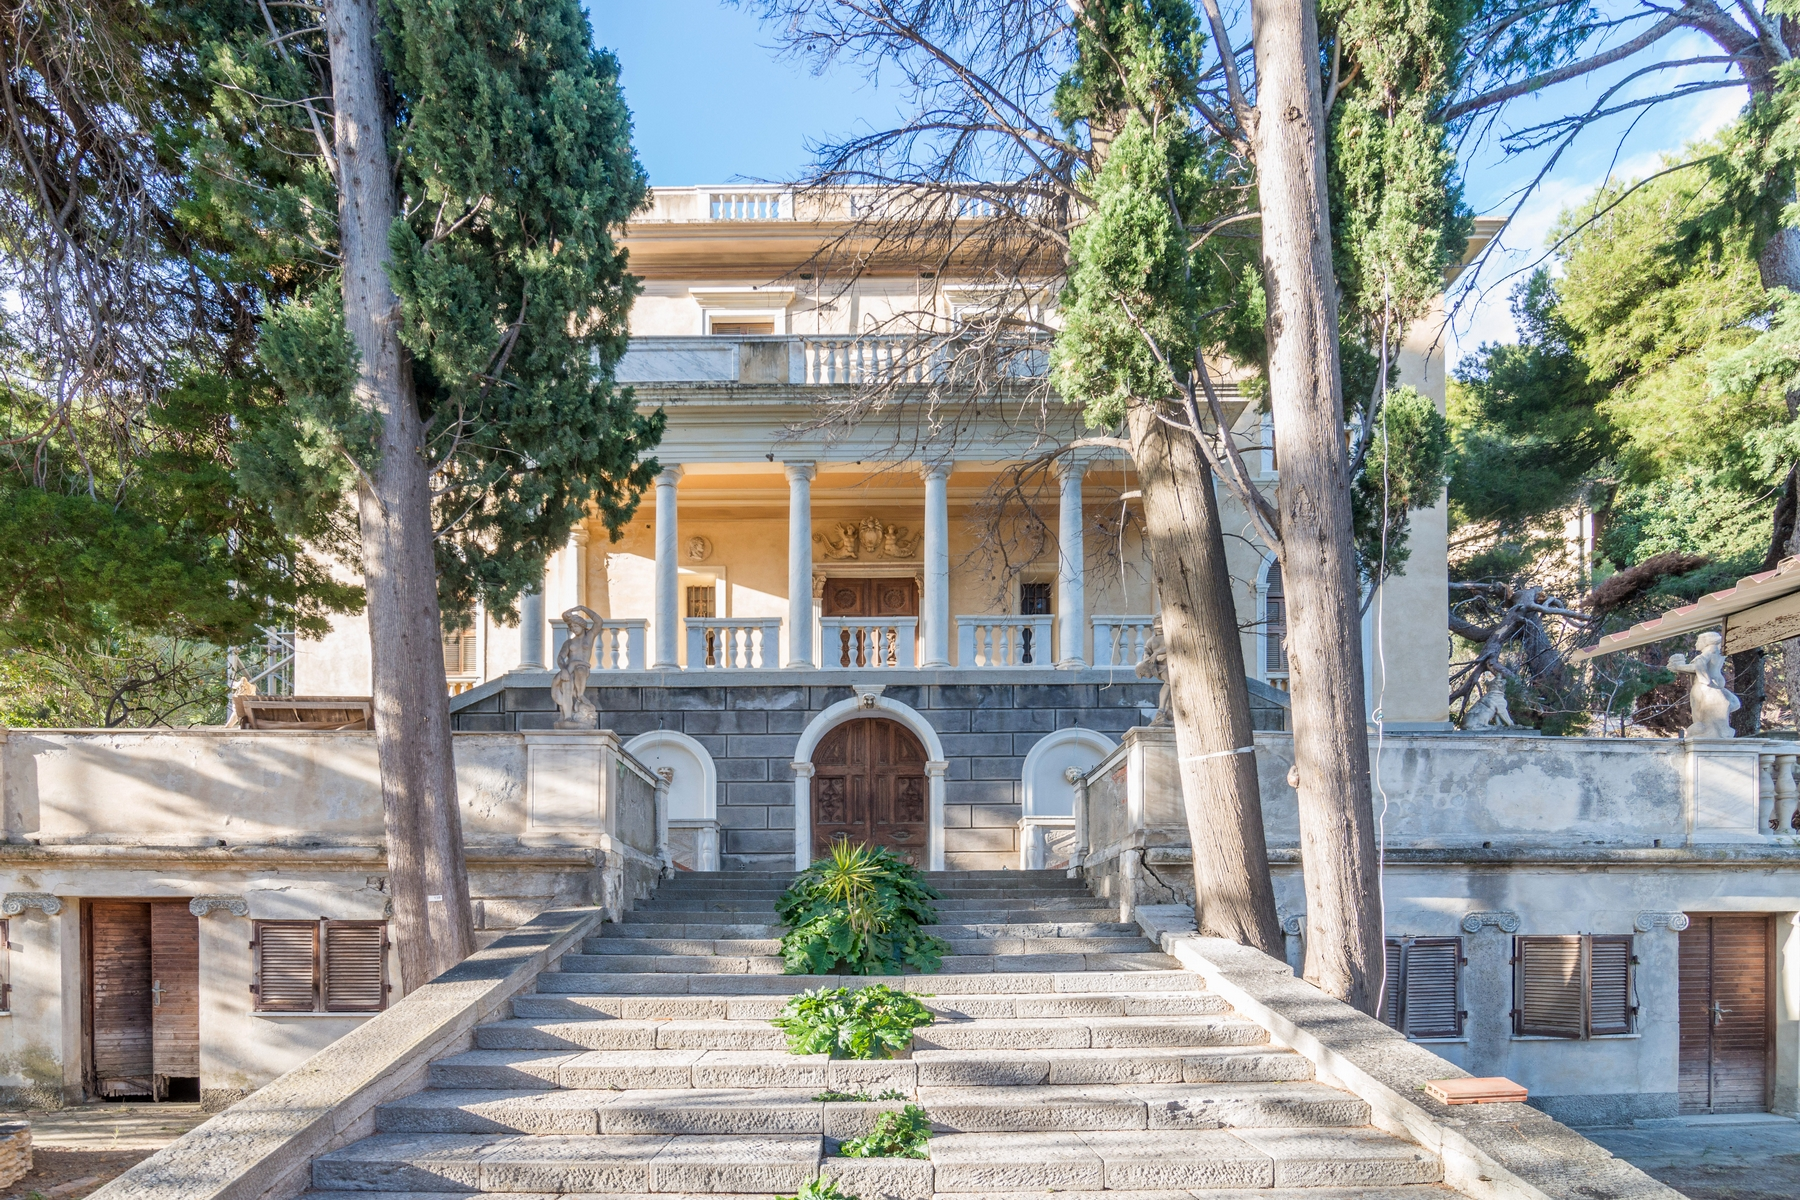 Multi-Family Home for Sale at One-Of-A-Kind estate Pieds Dans L'Eau Alassio, Italy